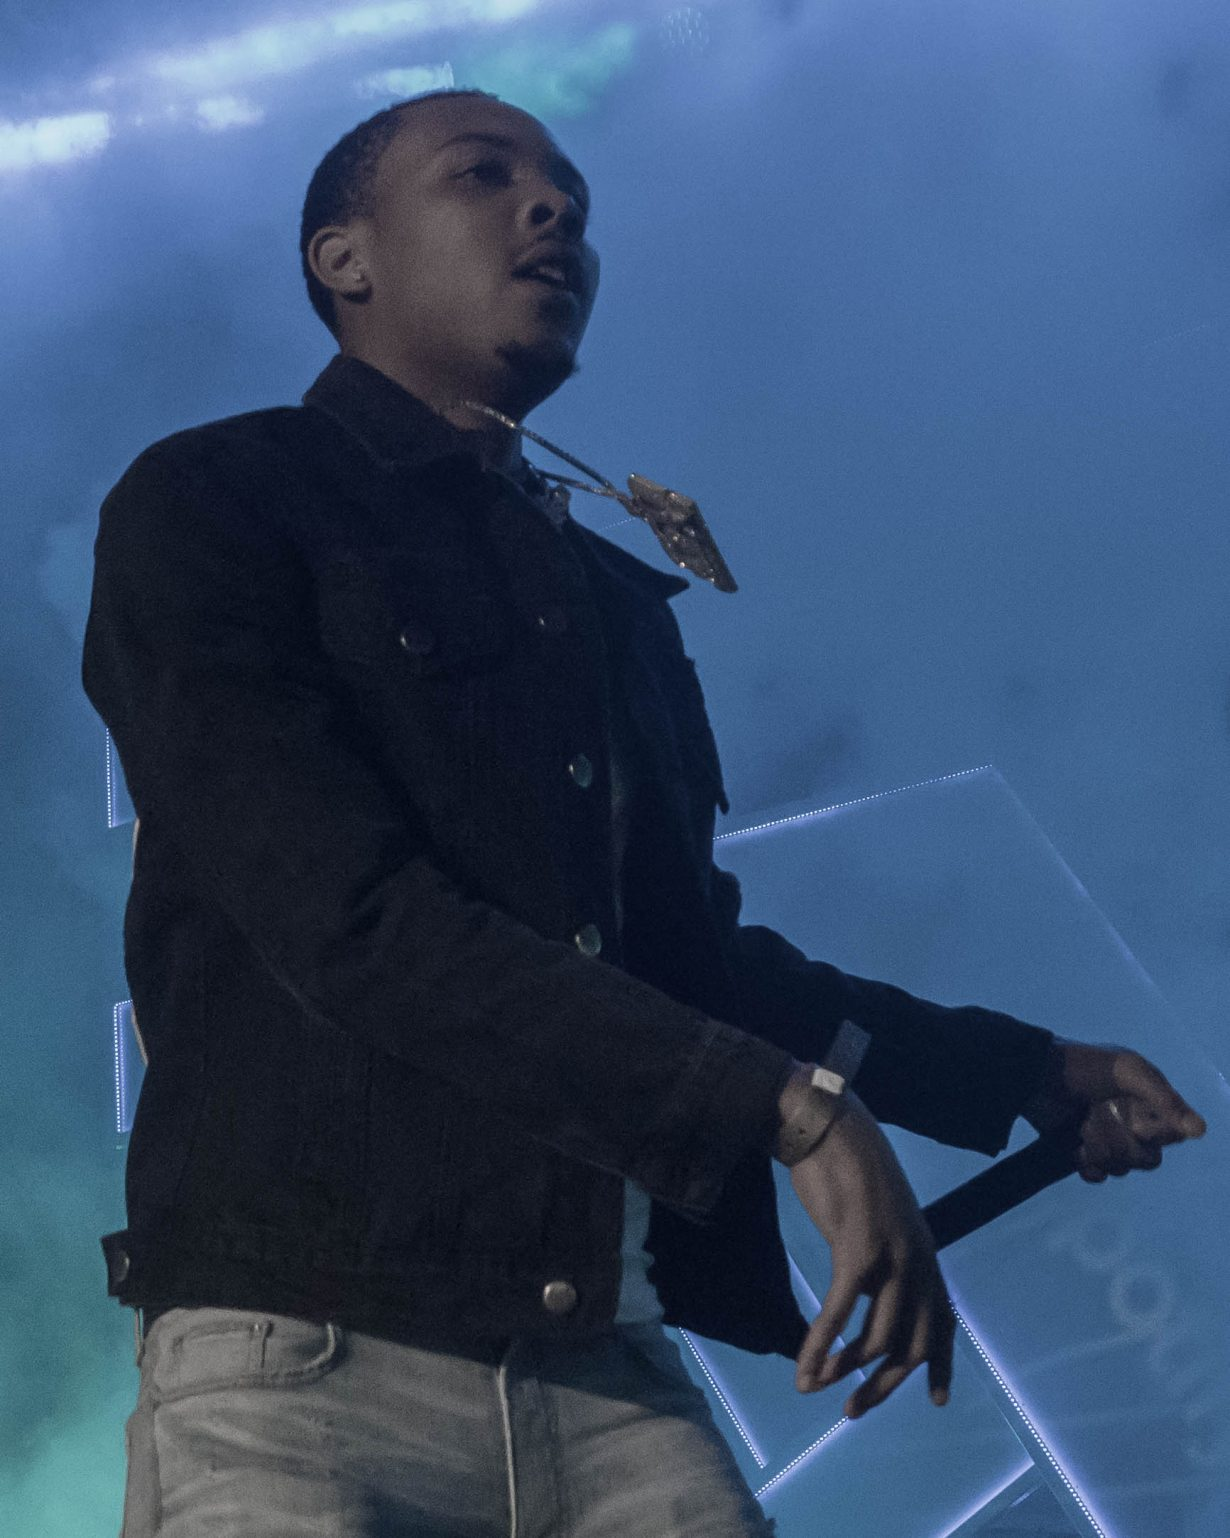 G Herbo. RapCaviar Aragon Ballroom 2017 Chicago Il. Photo by Kevin Baker 2 1230x1538 RapCaviar Sets Chicago On Fire with Lil Uzi Vert, Playboi Carti, Cardi B, DJ Drama and More